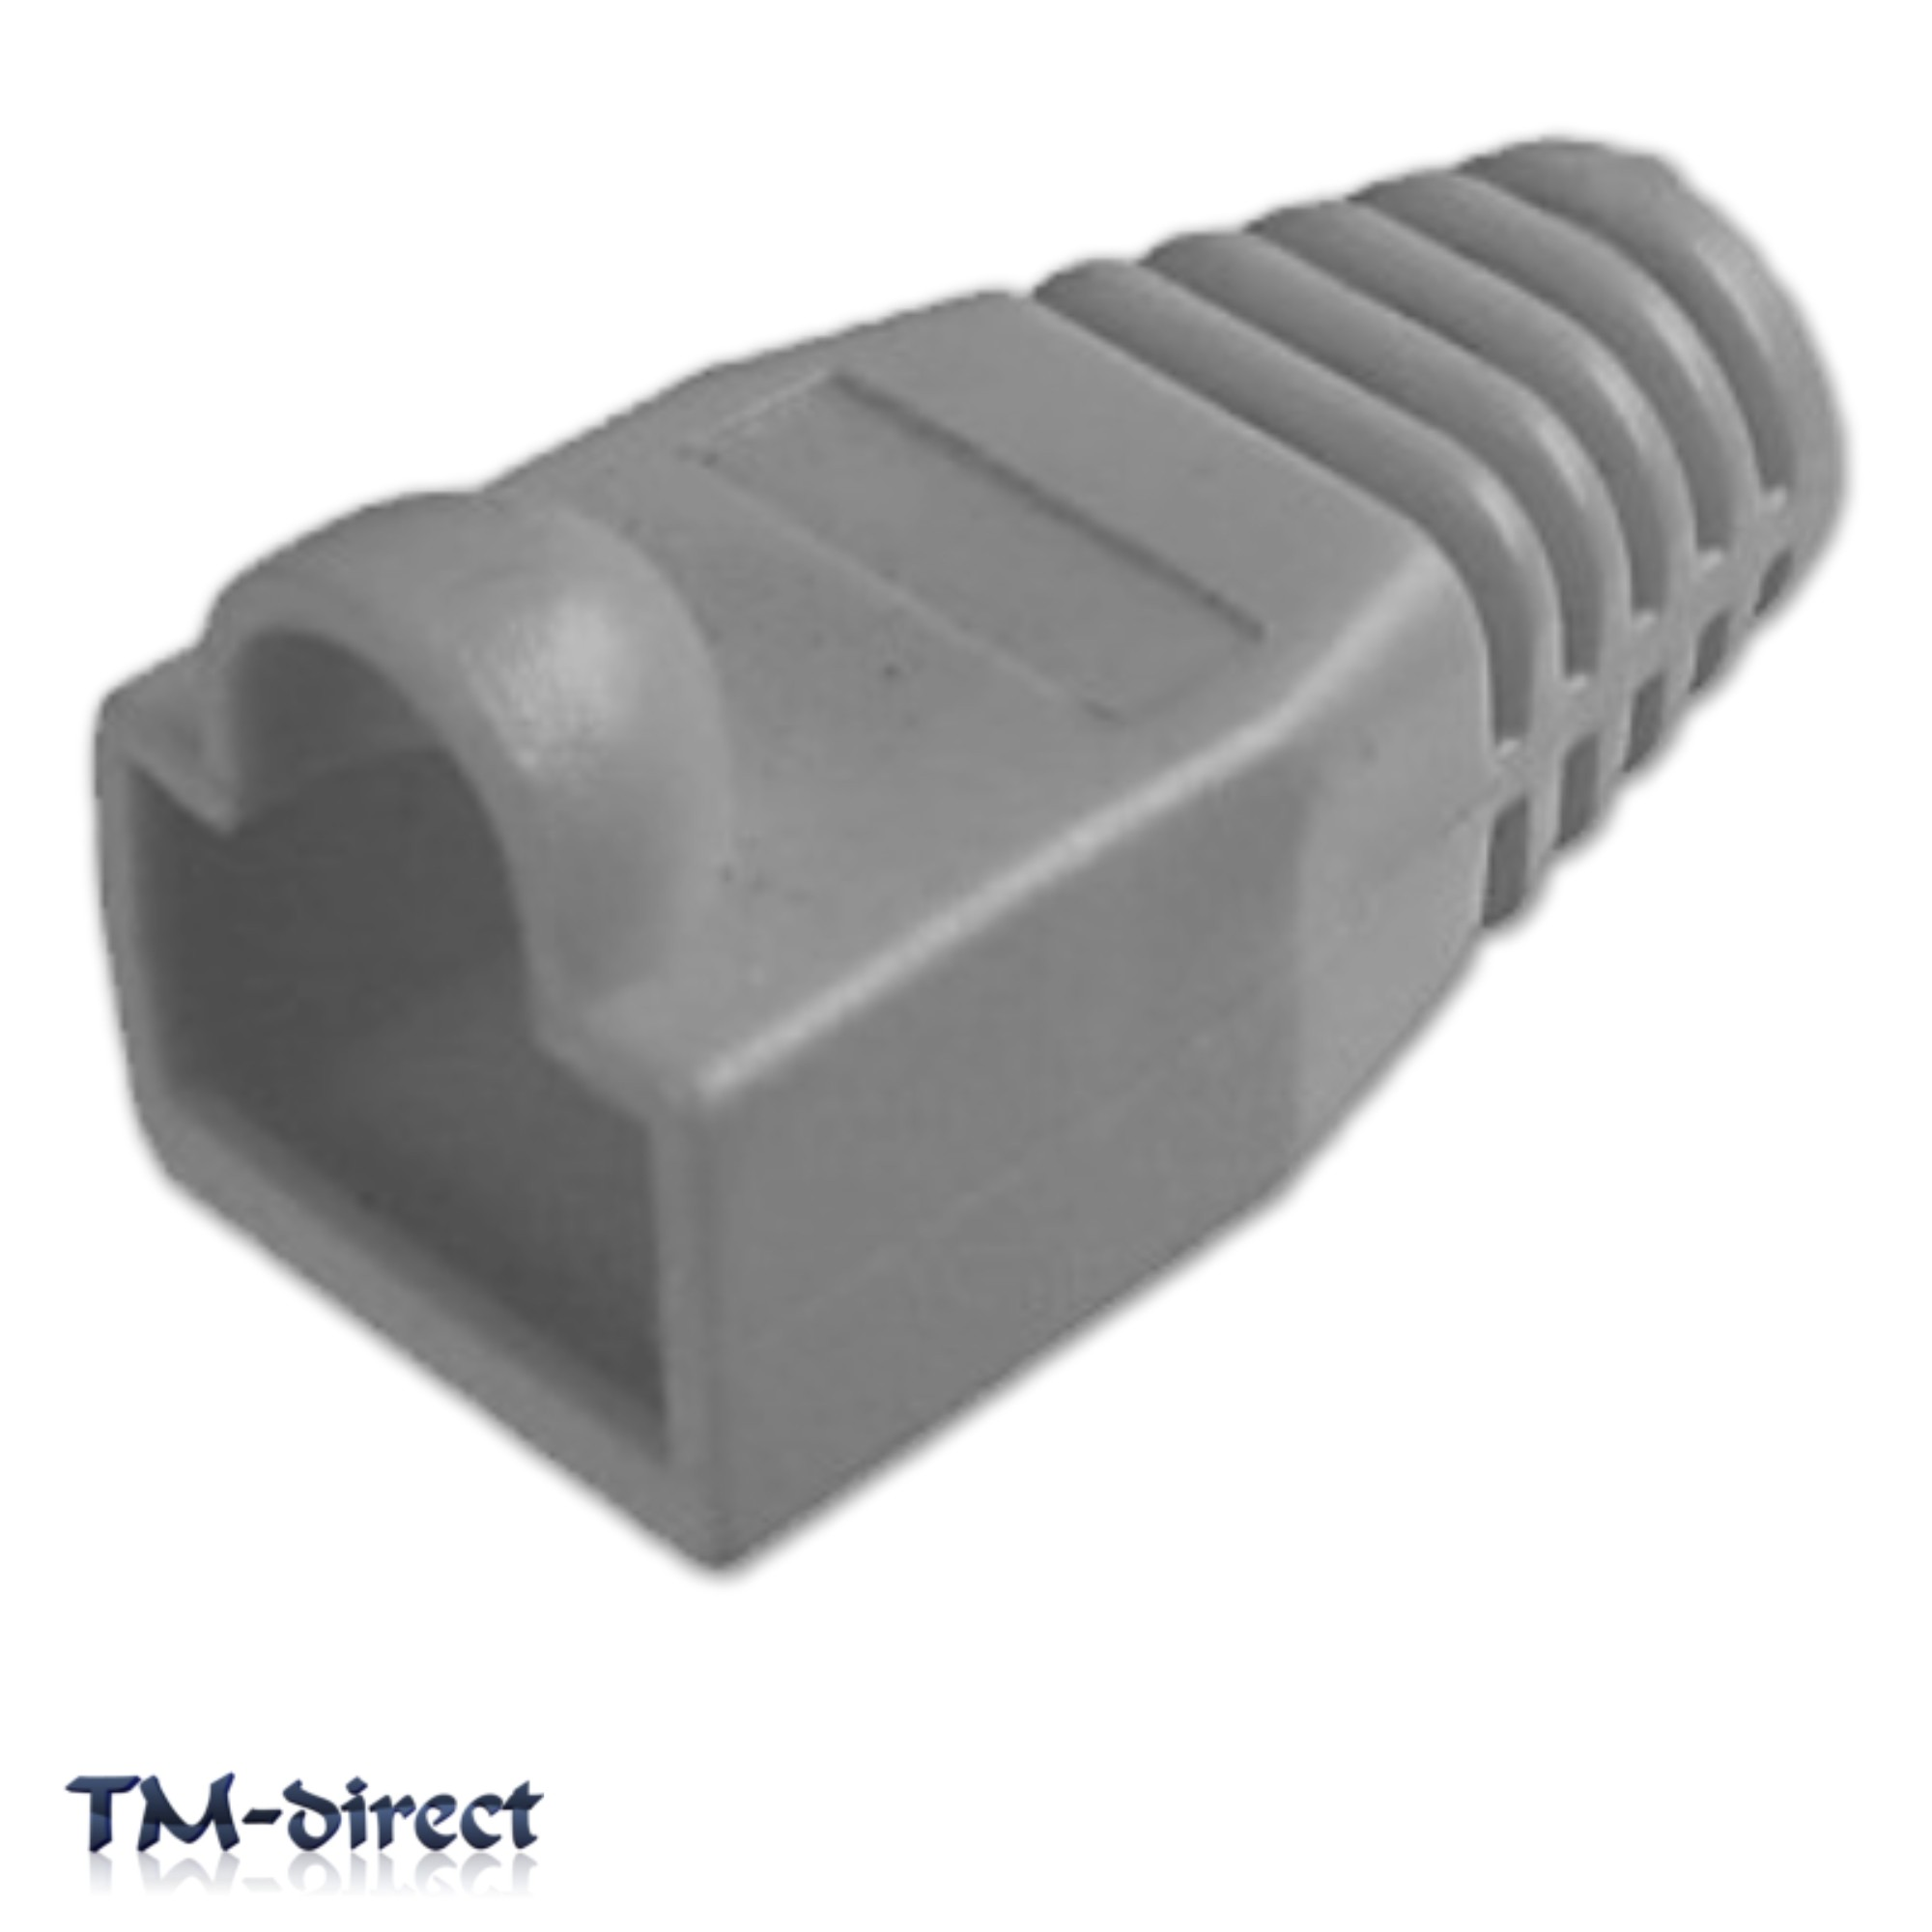 10x Ethernet Cable Cat5 Cat6 Rj45 Modular Net Plug 8p8c Connector Wiring Boot Grey 150580279019 T 3668